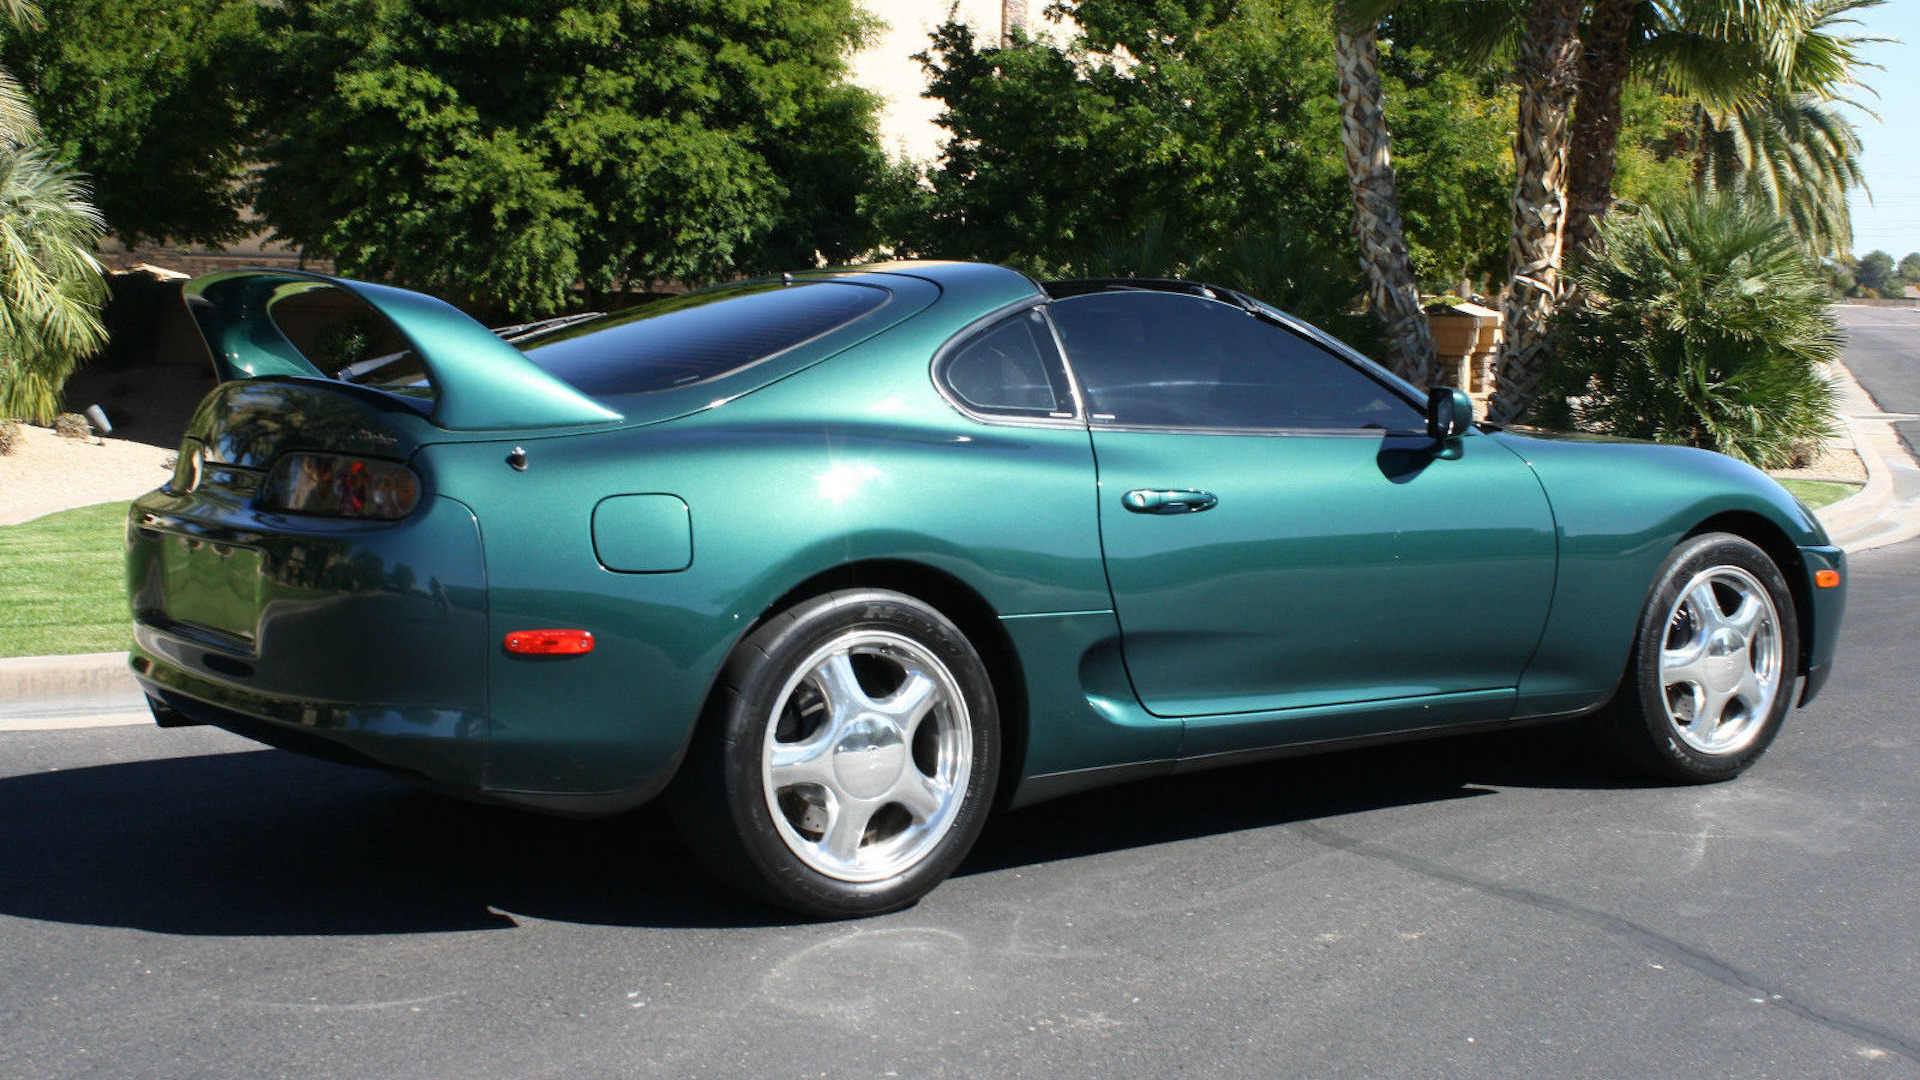 Toyota Supra Vs Skyline Gt R Which Would You Buy